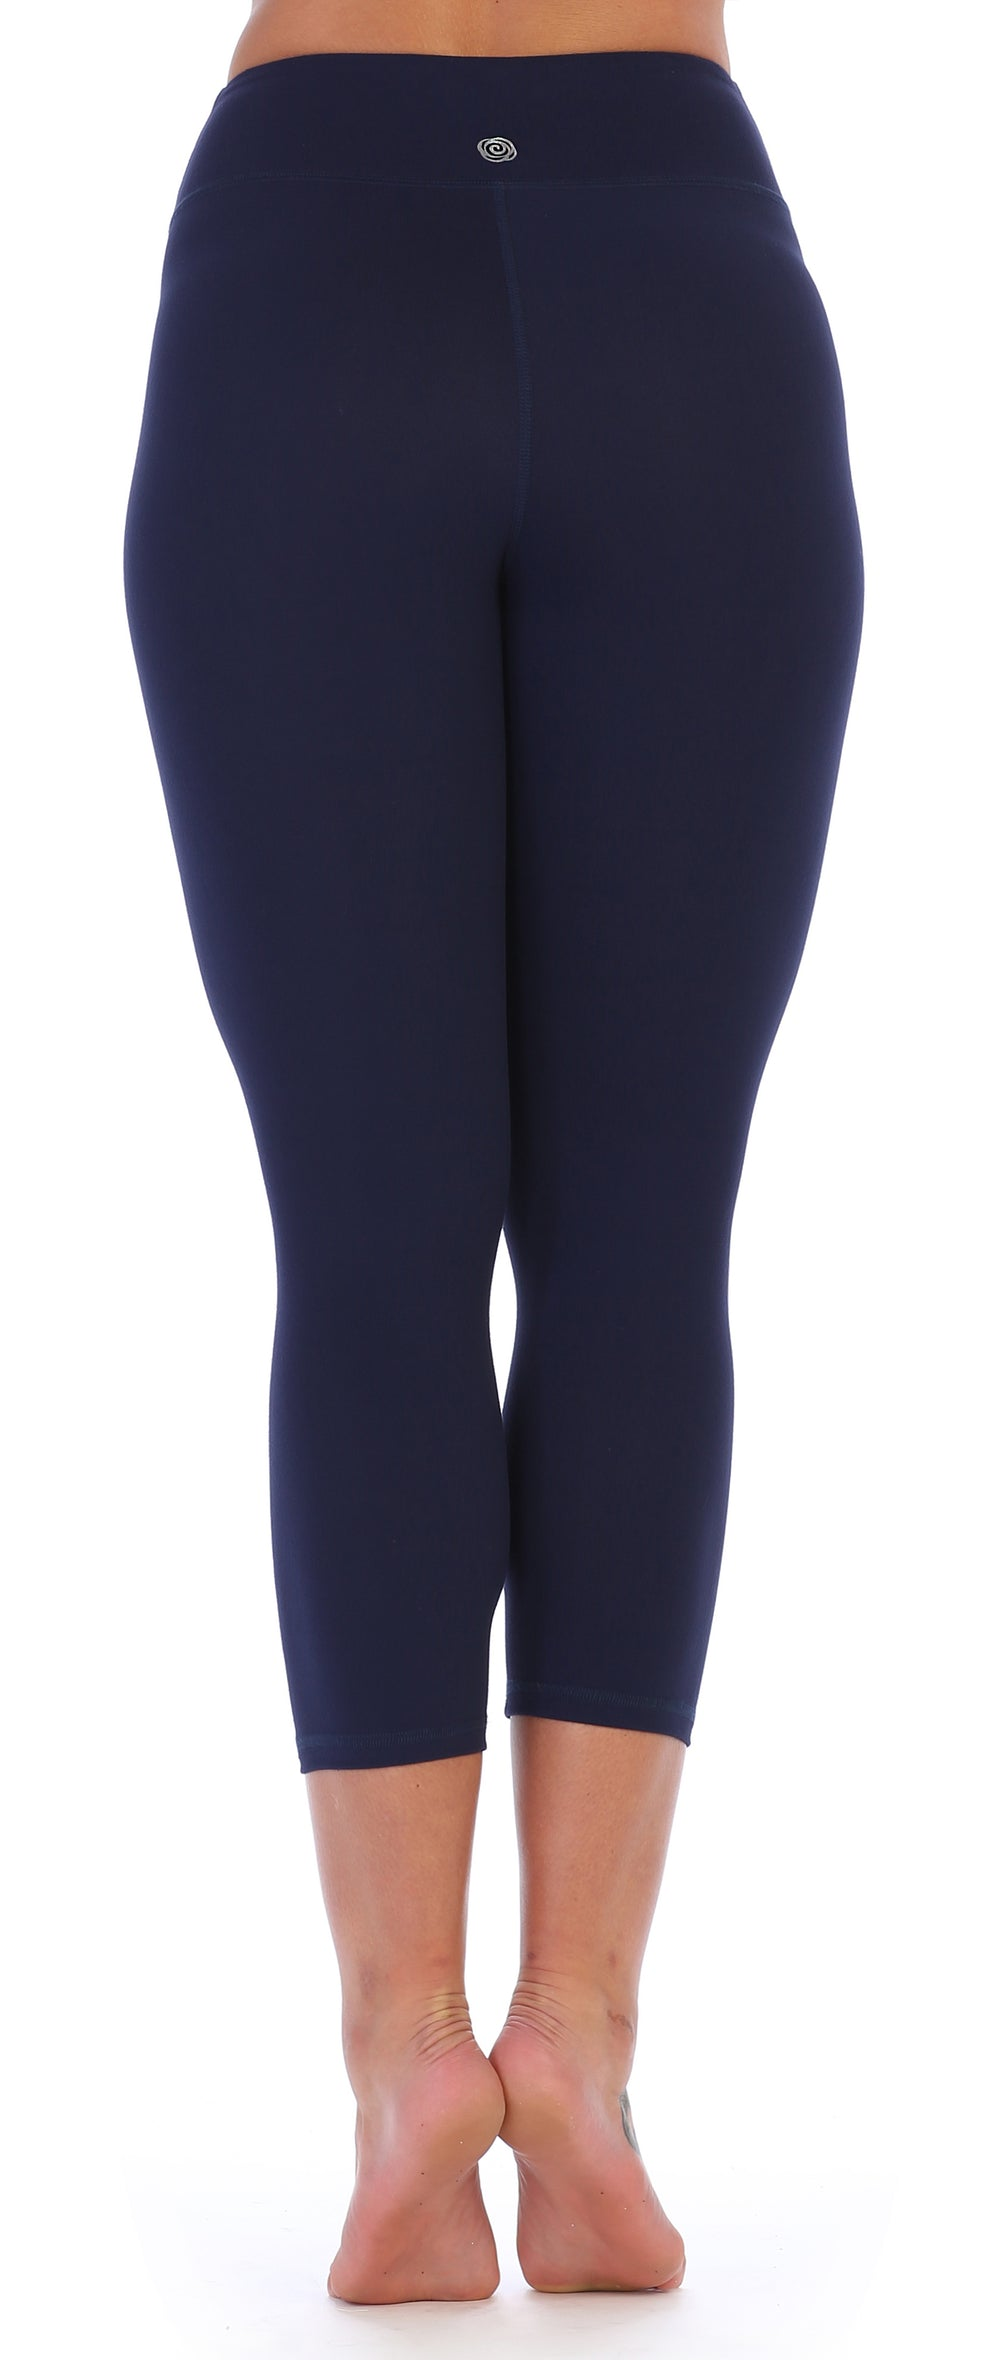 Navy-Compression 3/4 Length Workout Leggings-back image